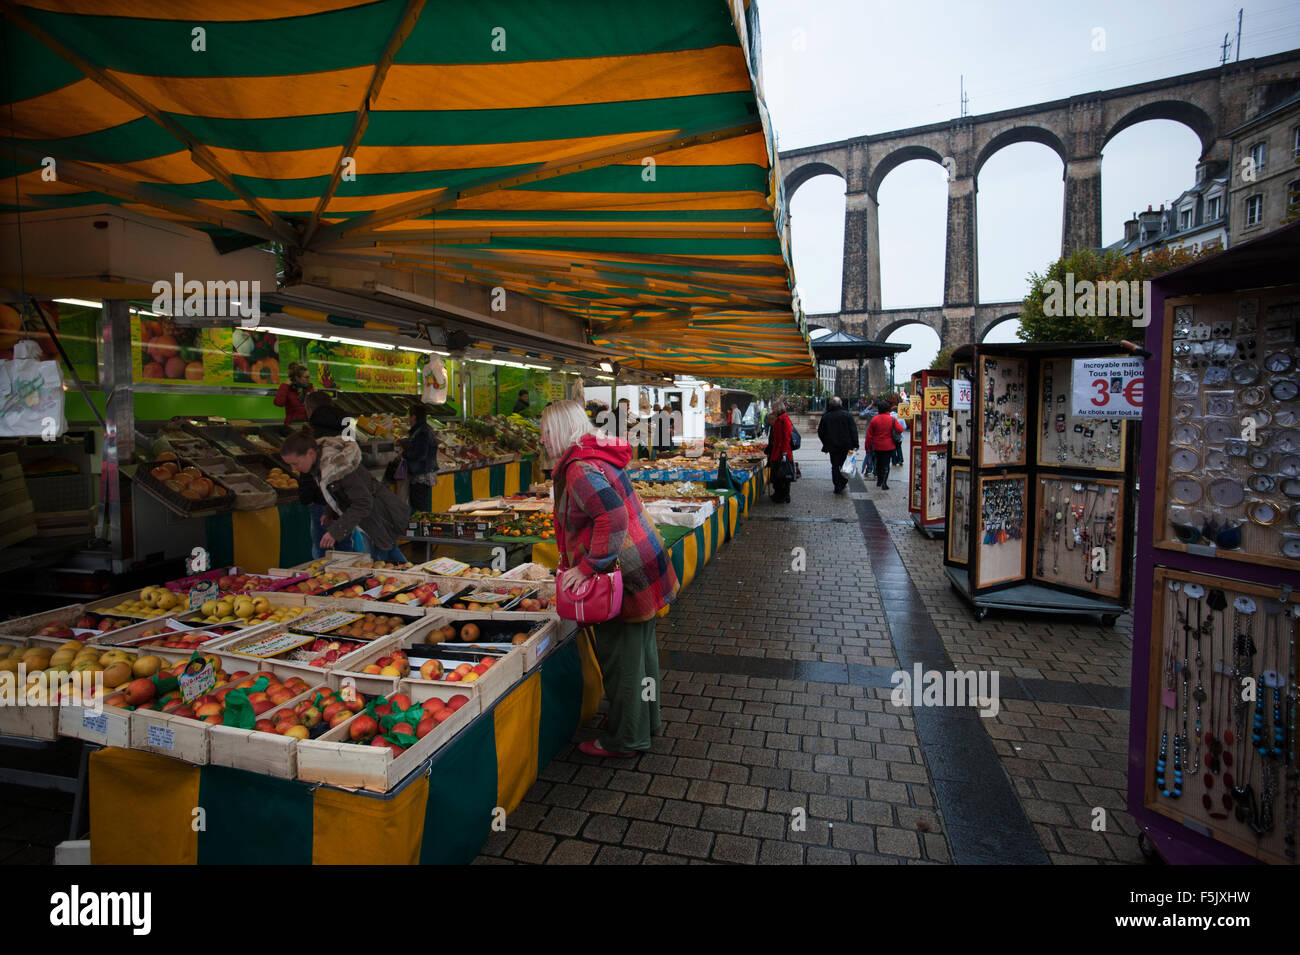 Morlaix, Brittany, France. The market and old buildings and Viaduct. October 2015 Woman in red coat model released. - Stock Image